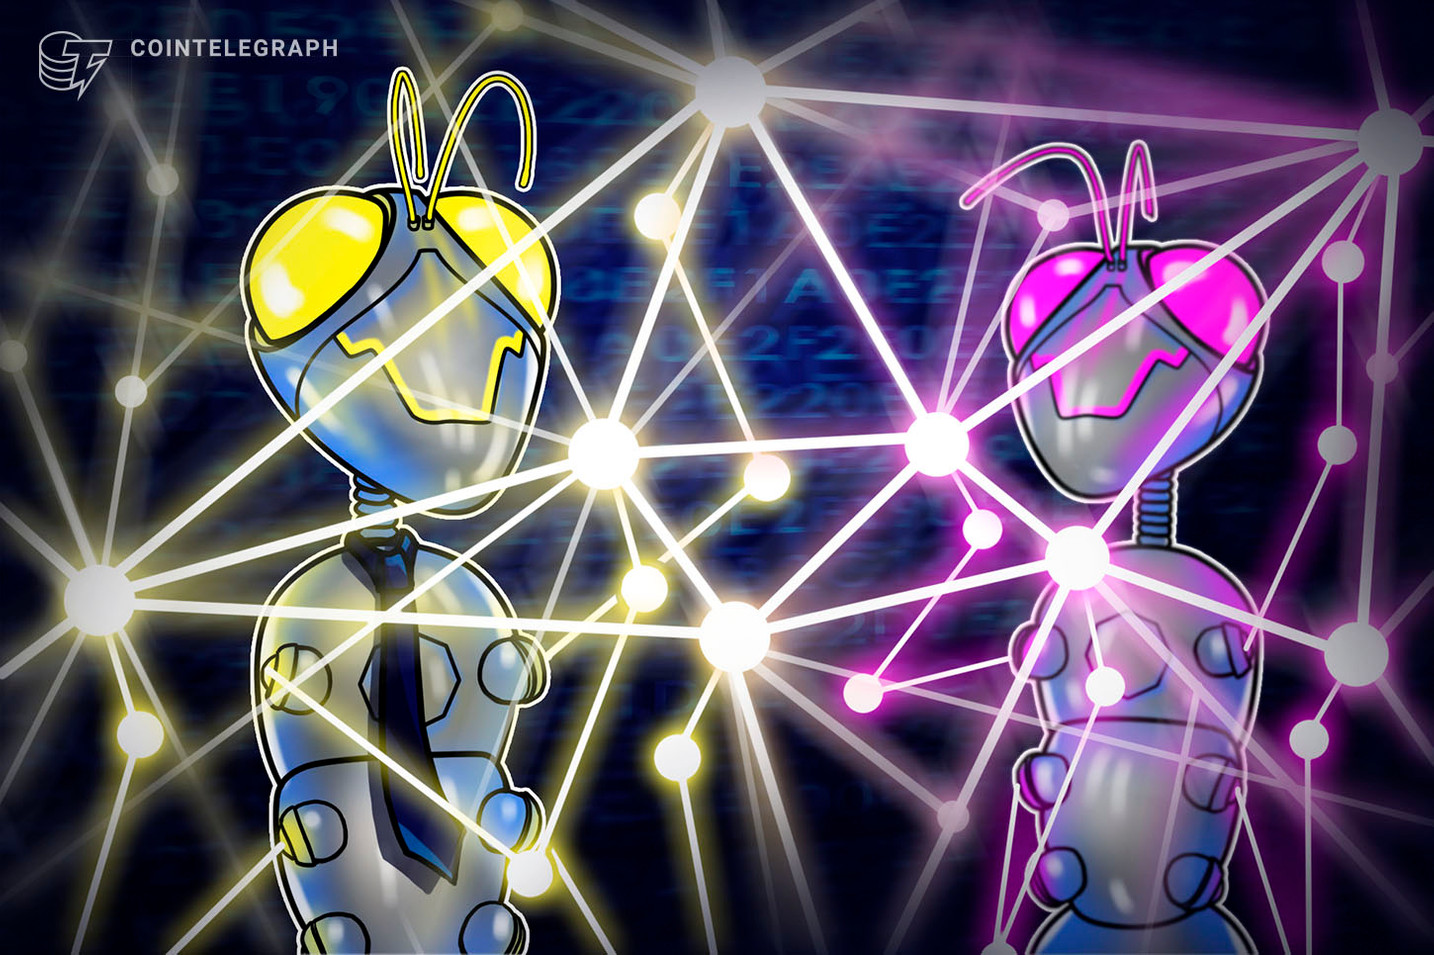 Web 3.0 Will Drive Decentralized Business Models, Says Blockchain Exec